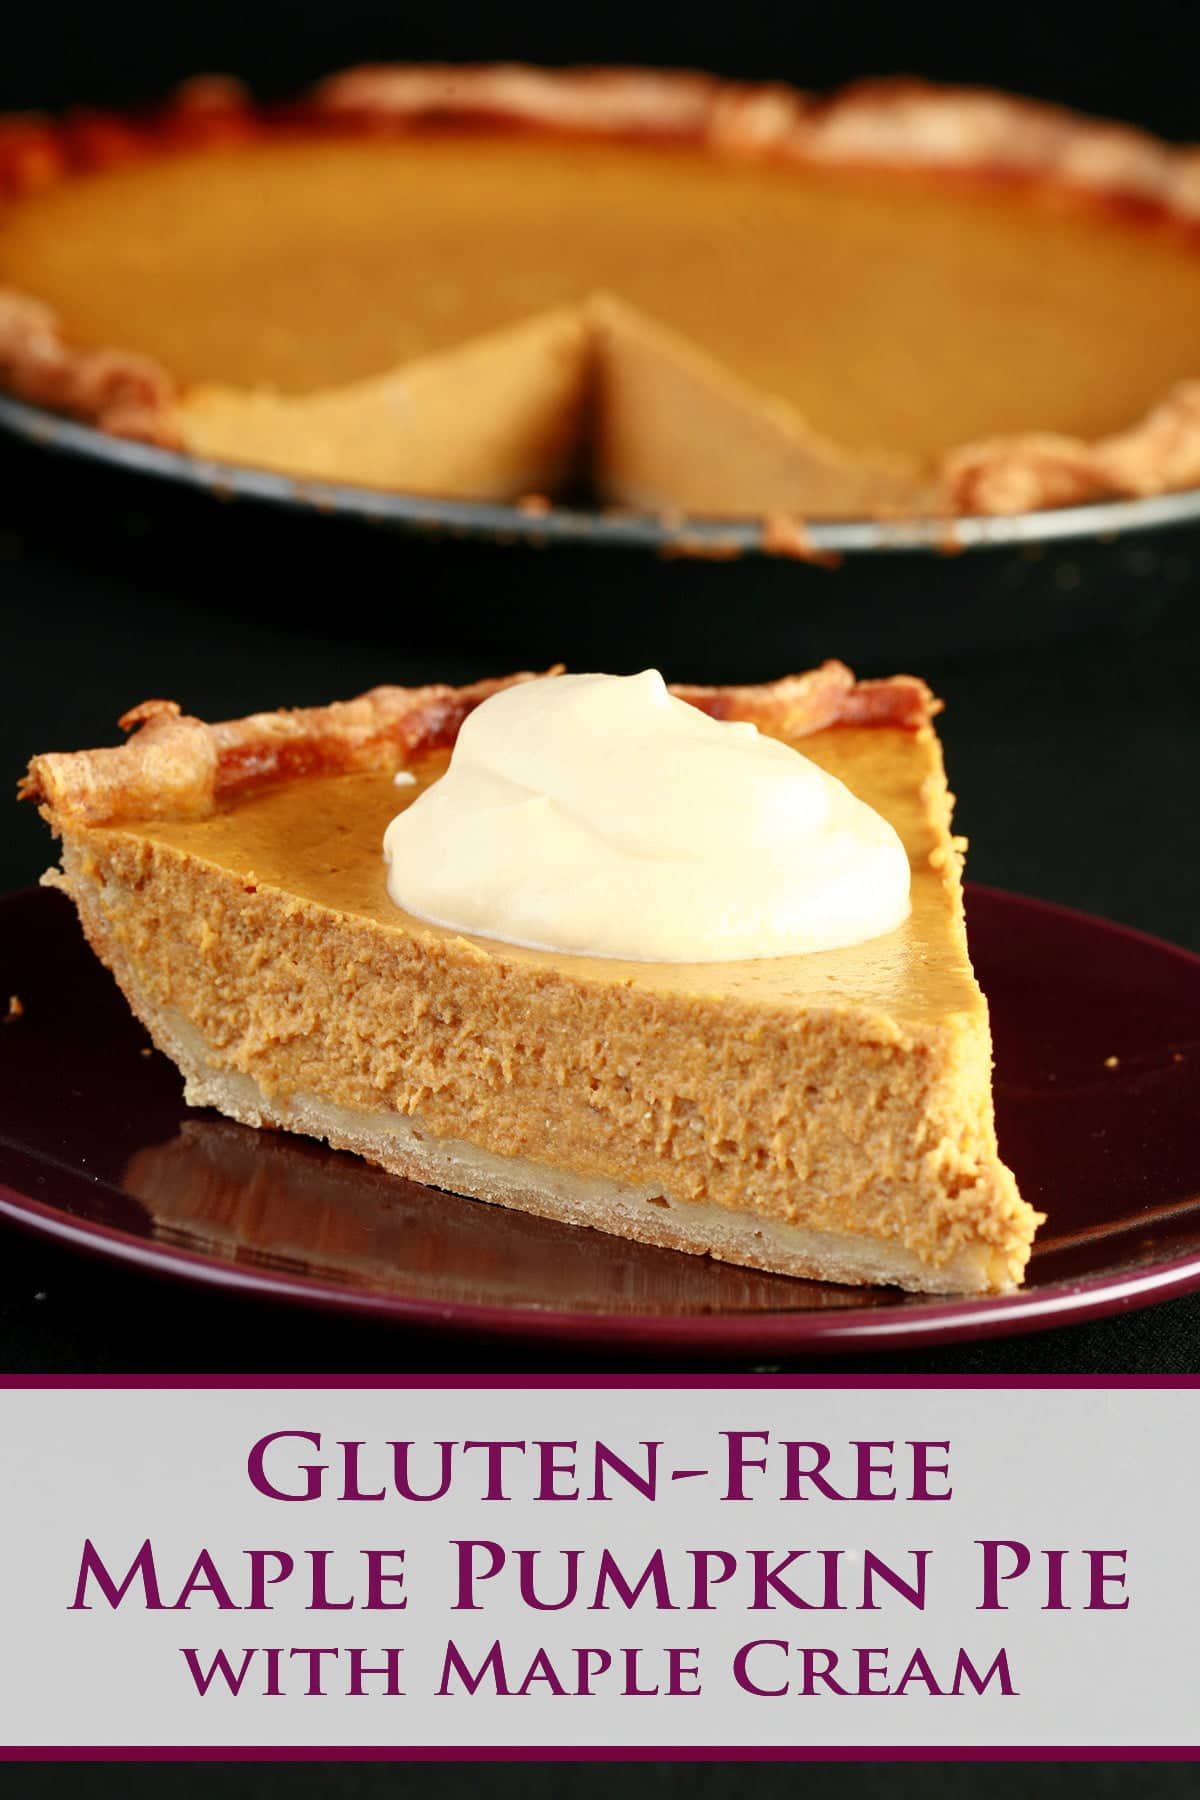 A pumpkin pie - topped with whipped cream - against a black background. Purple text overlay says gluten free maple pumpkin pie with maple cream.